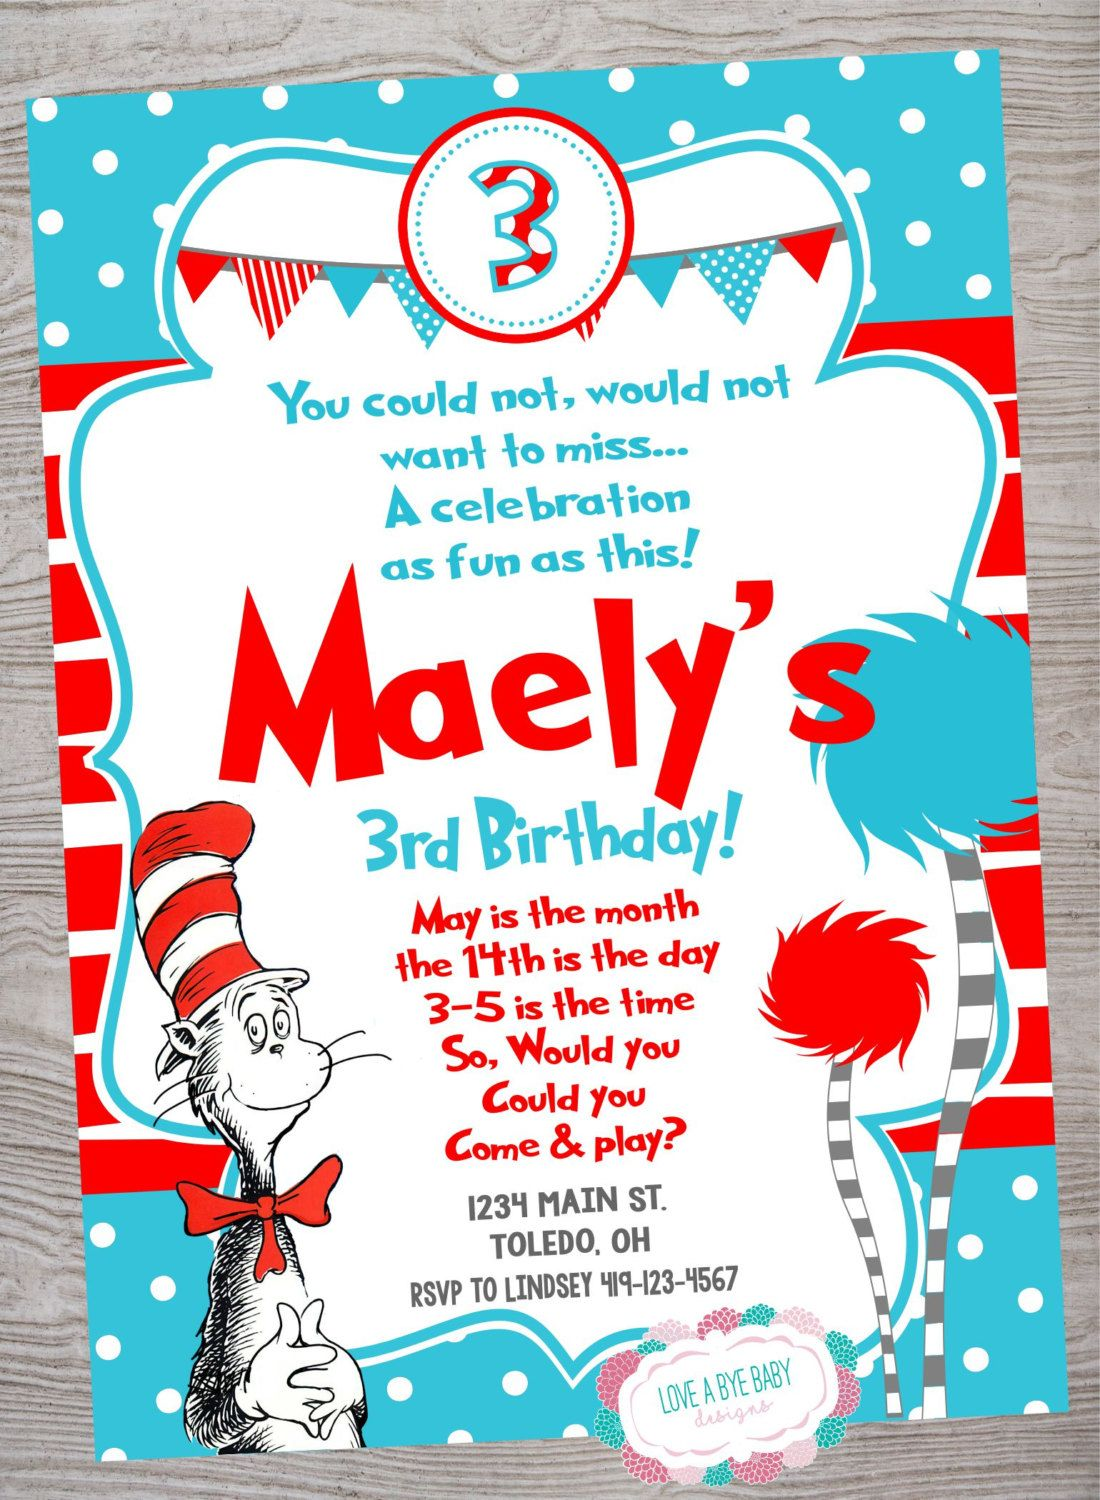 Dr Seuss Lorax Cat In The Hat Party kid birthday party invitation ...